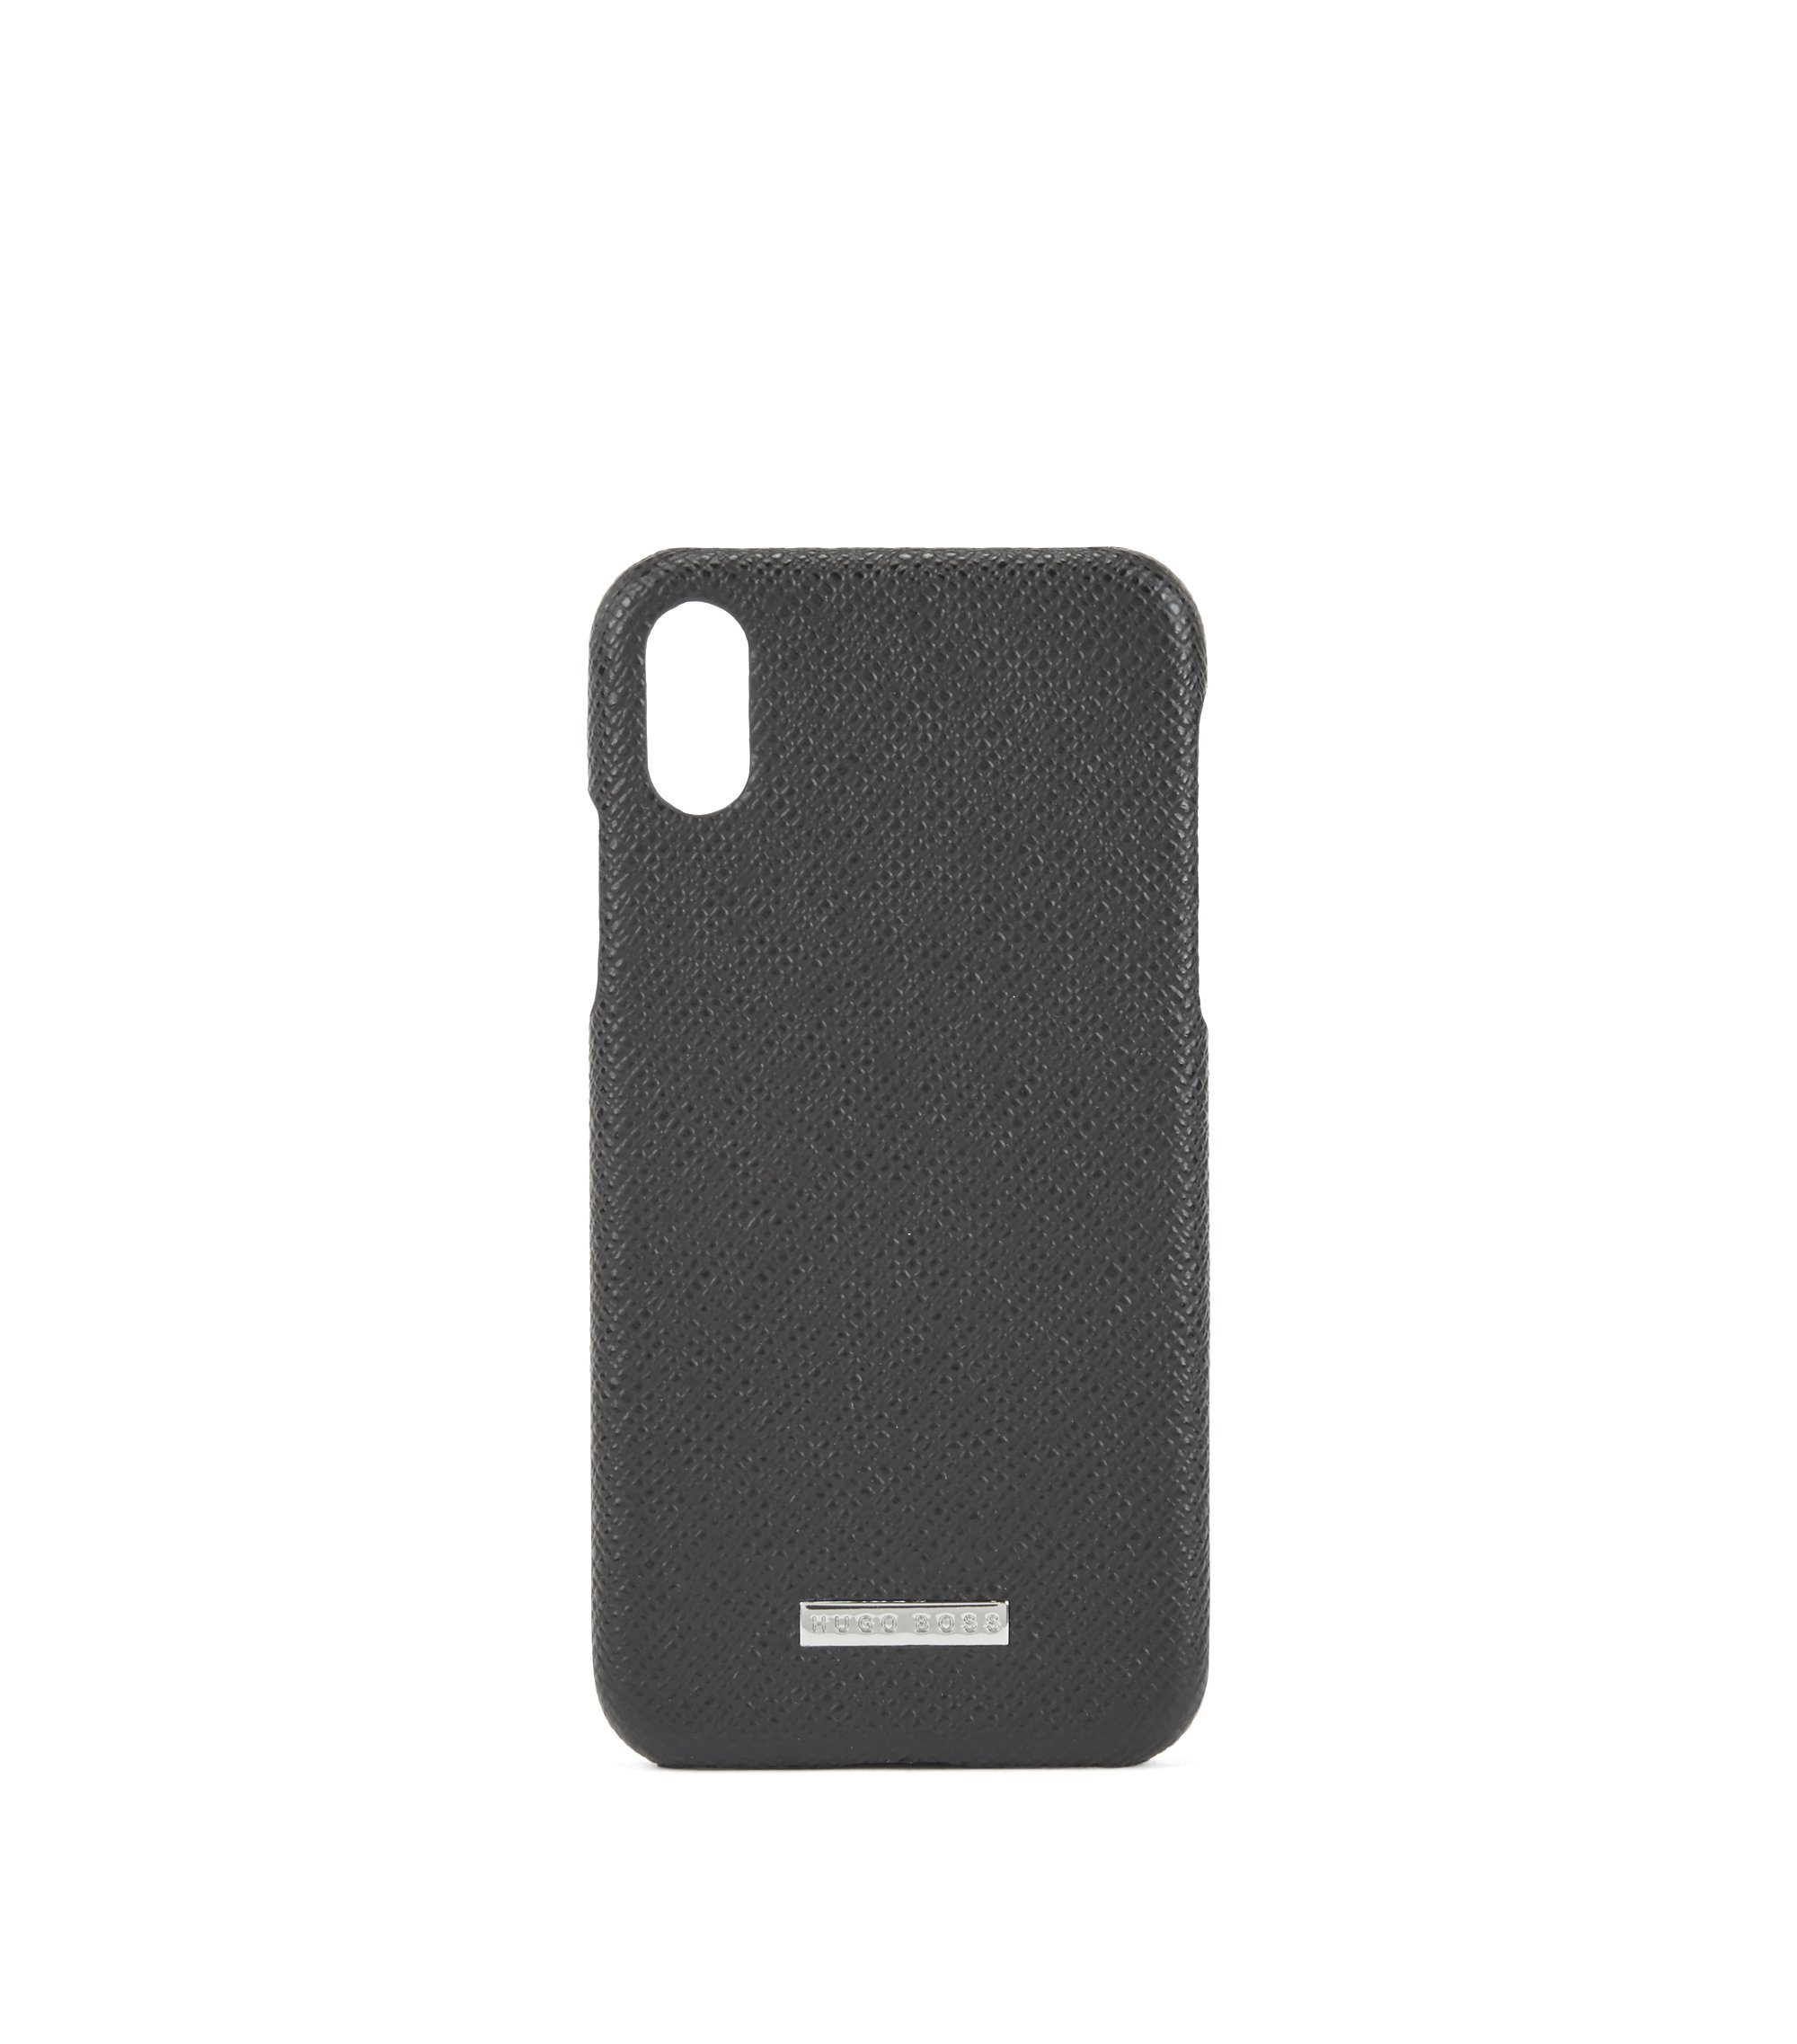 Funda para iPhone X de Signature Collection en piel de becerro italiana, Negro